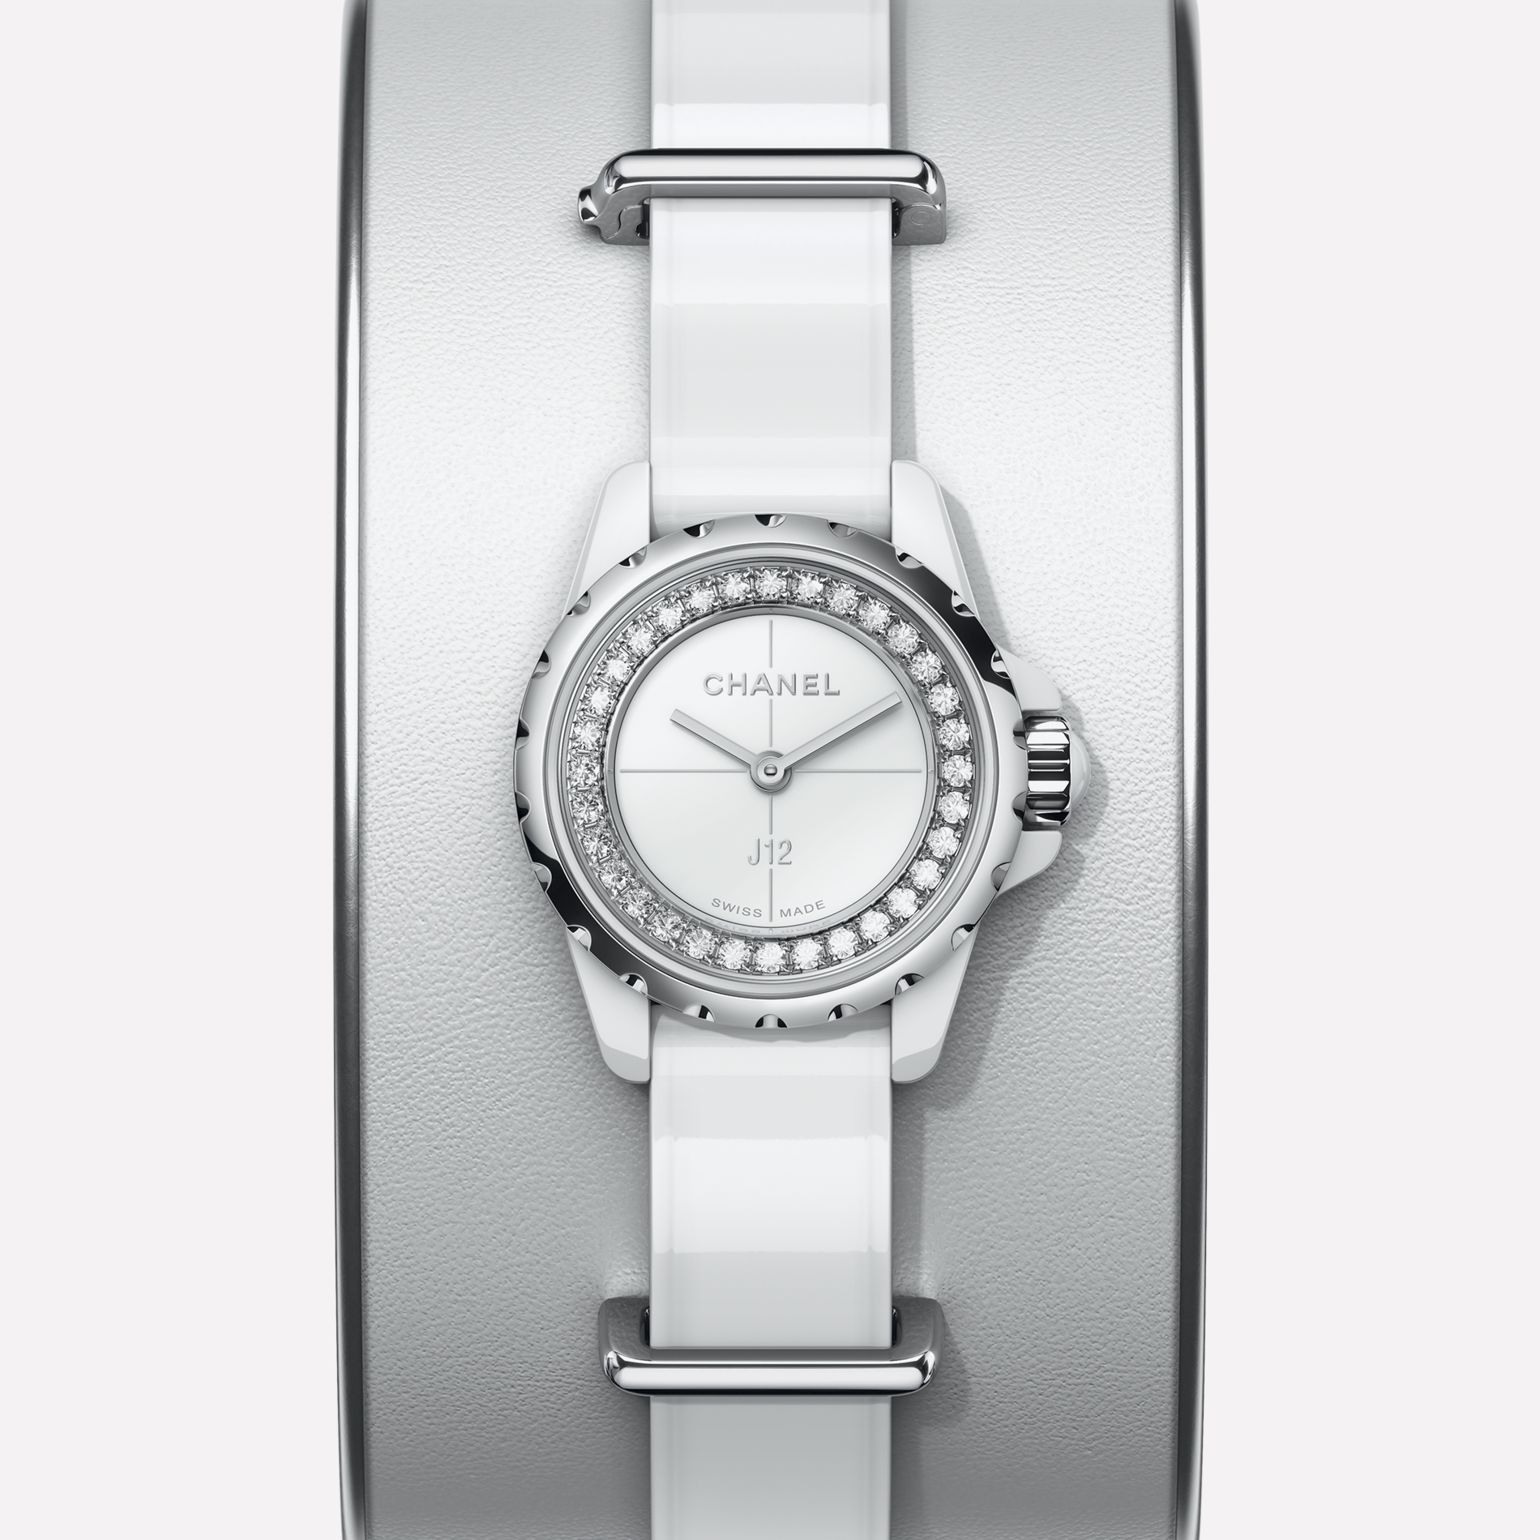 J12·XS Small cuff in white leather, white highly resistant ceramic and steel, flange set with diamonds